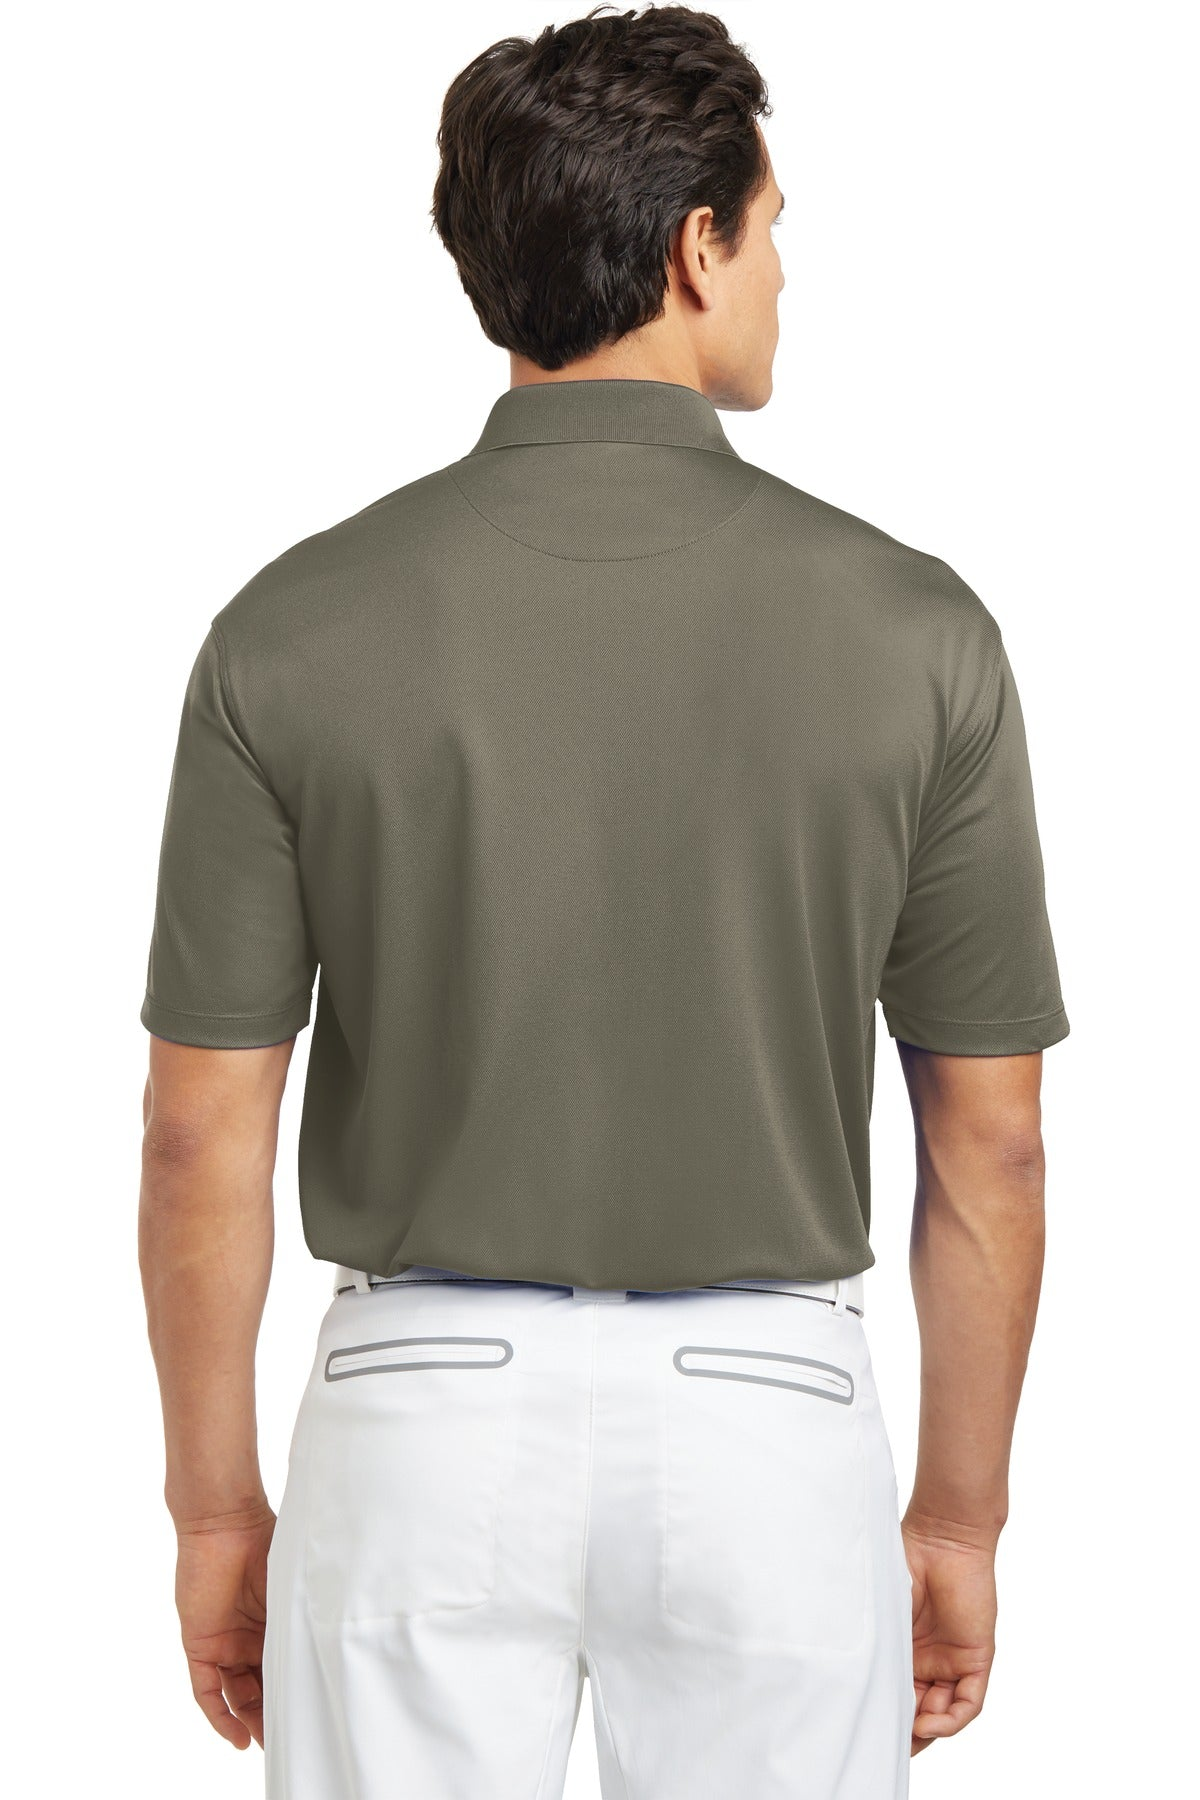 Olive / Khaki Nike Tech Basic Dri-FIT Polo.